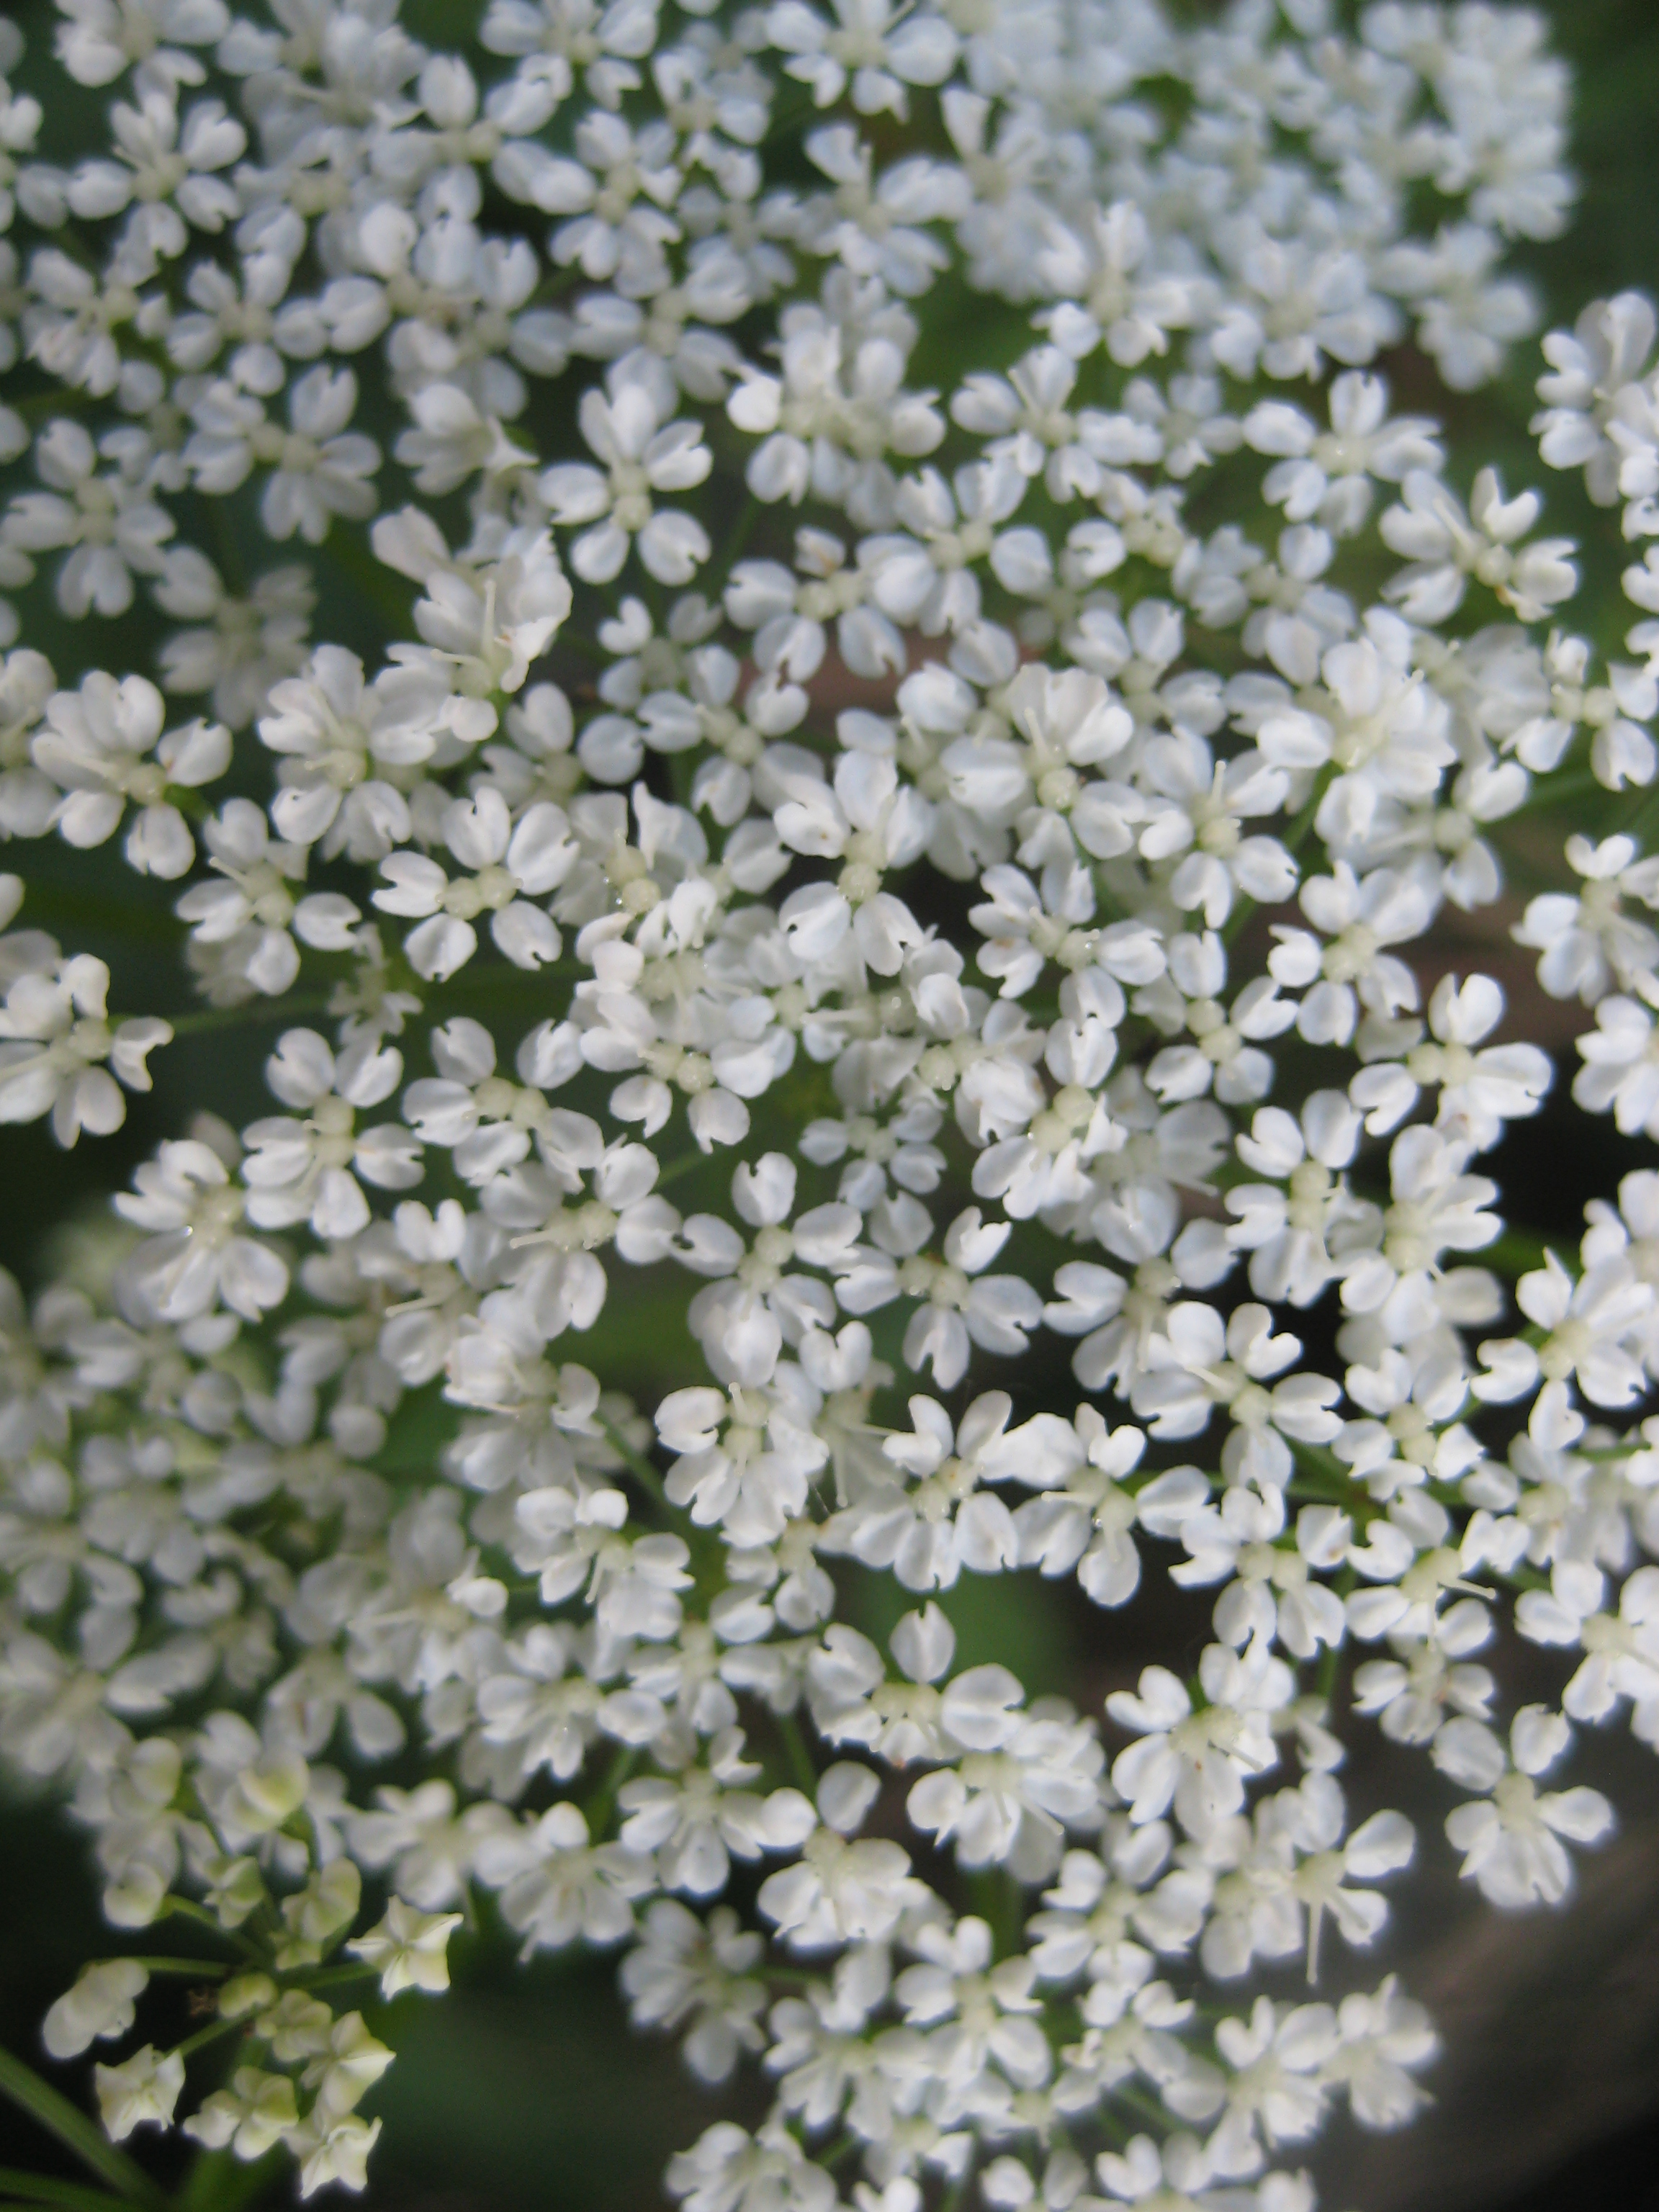 white flower | Berlin Plants: Reading History in the Green Spaces of ...